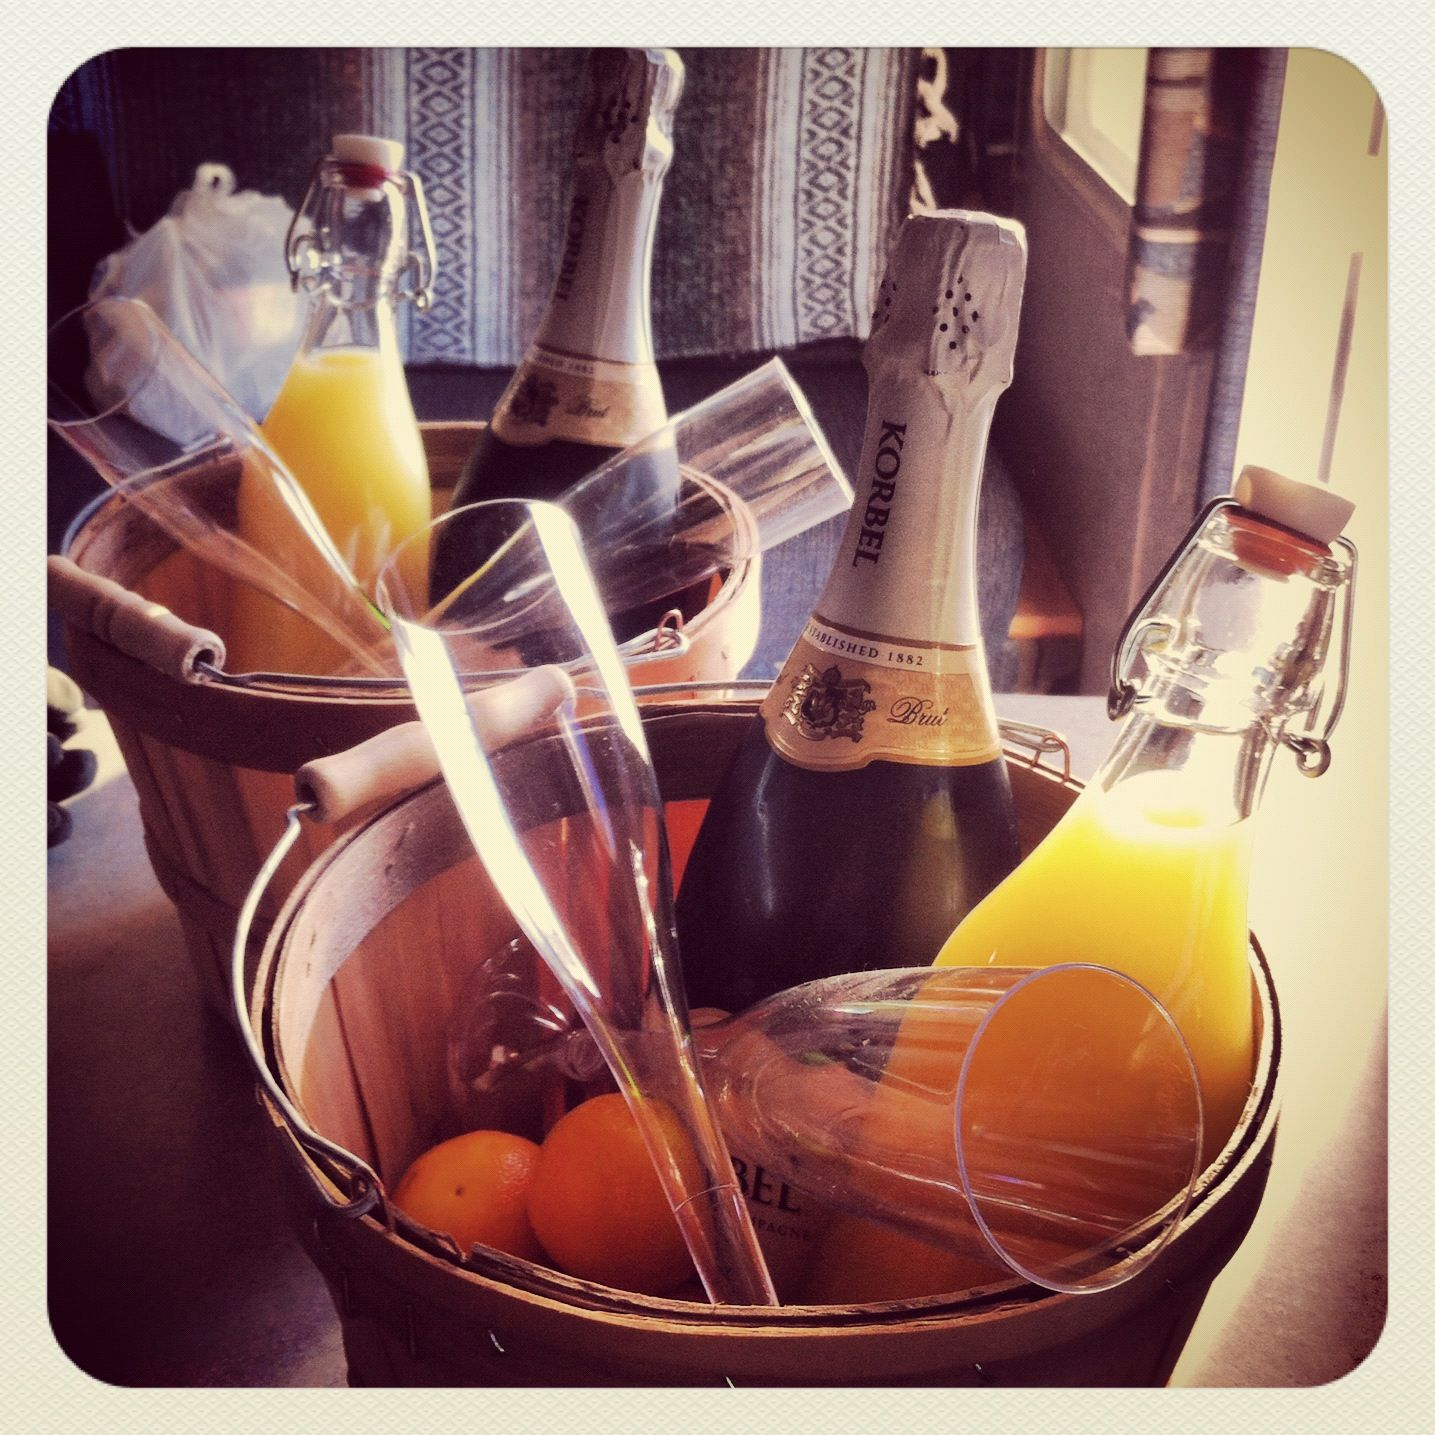 Wedding Party Gift Baskets: Mimosa Morning Gift Baskets.